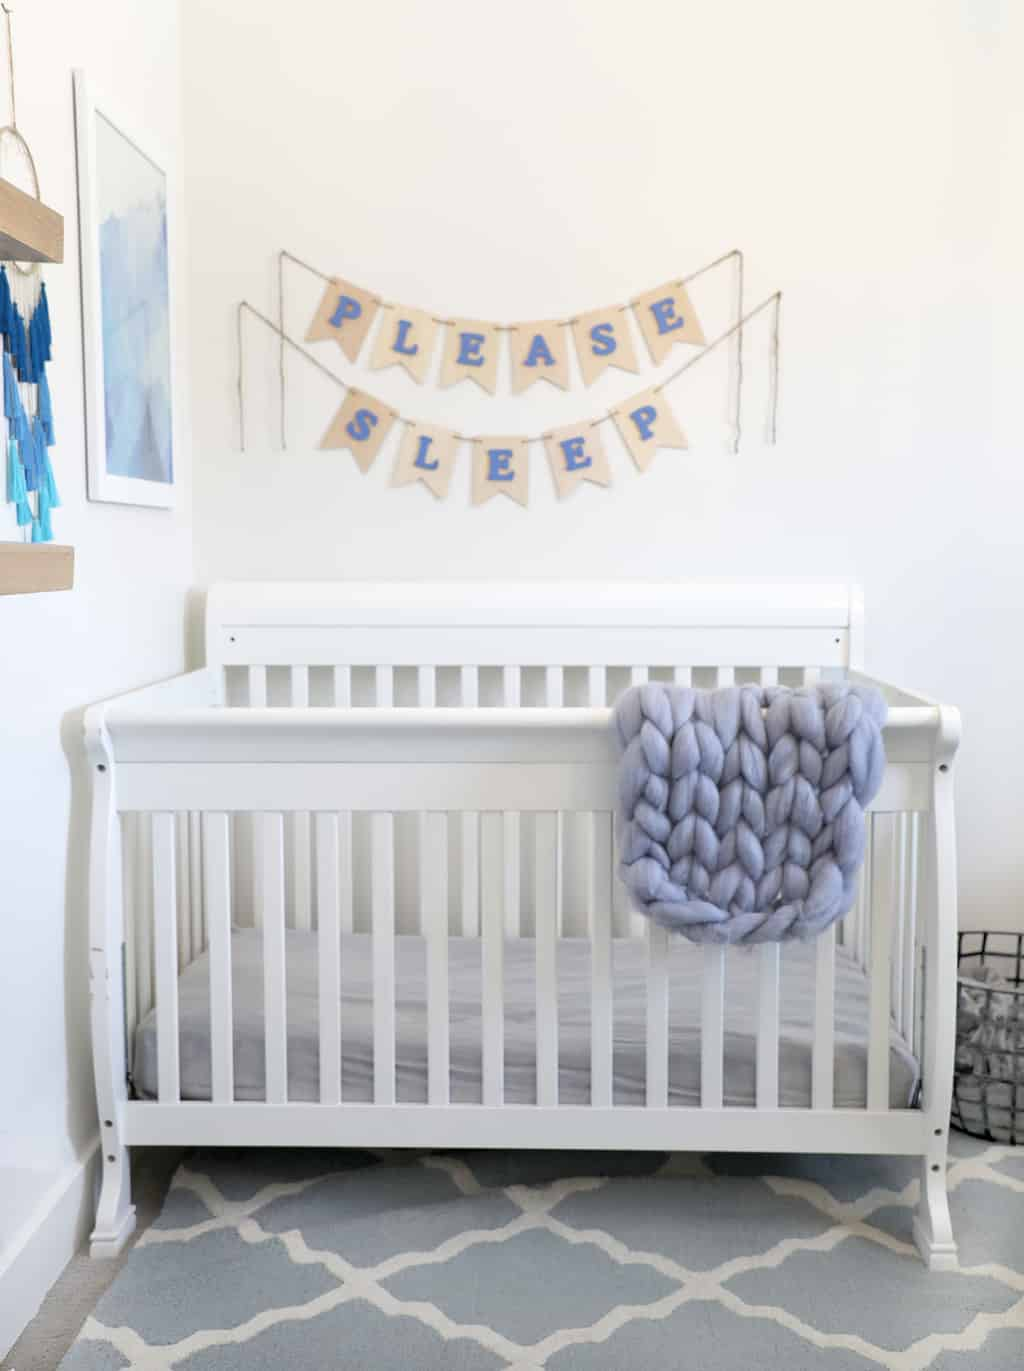 """white crib against a white wall with blue accents and a """"please sleep"""" banner"""